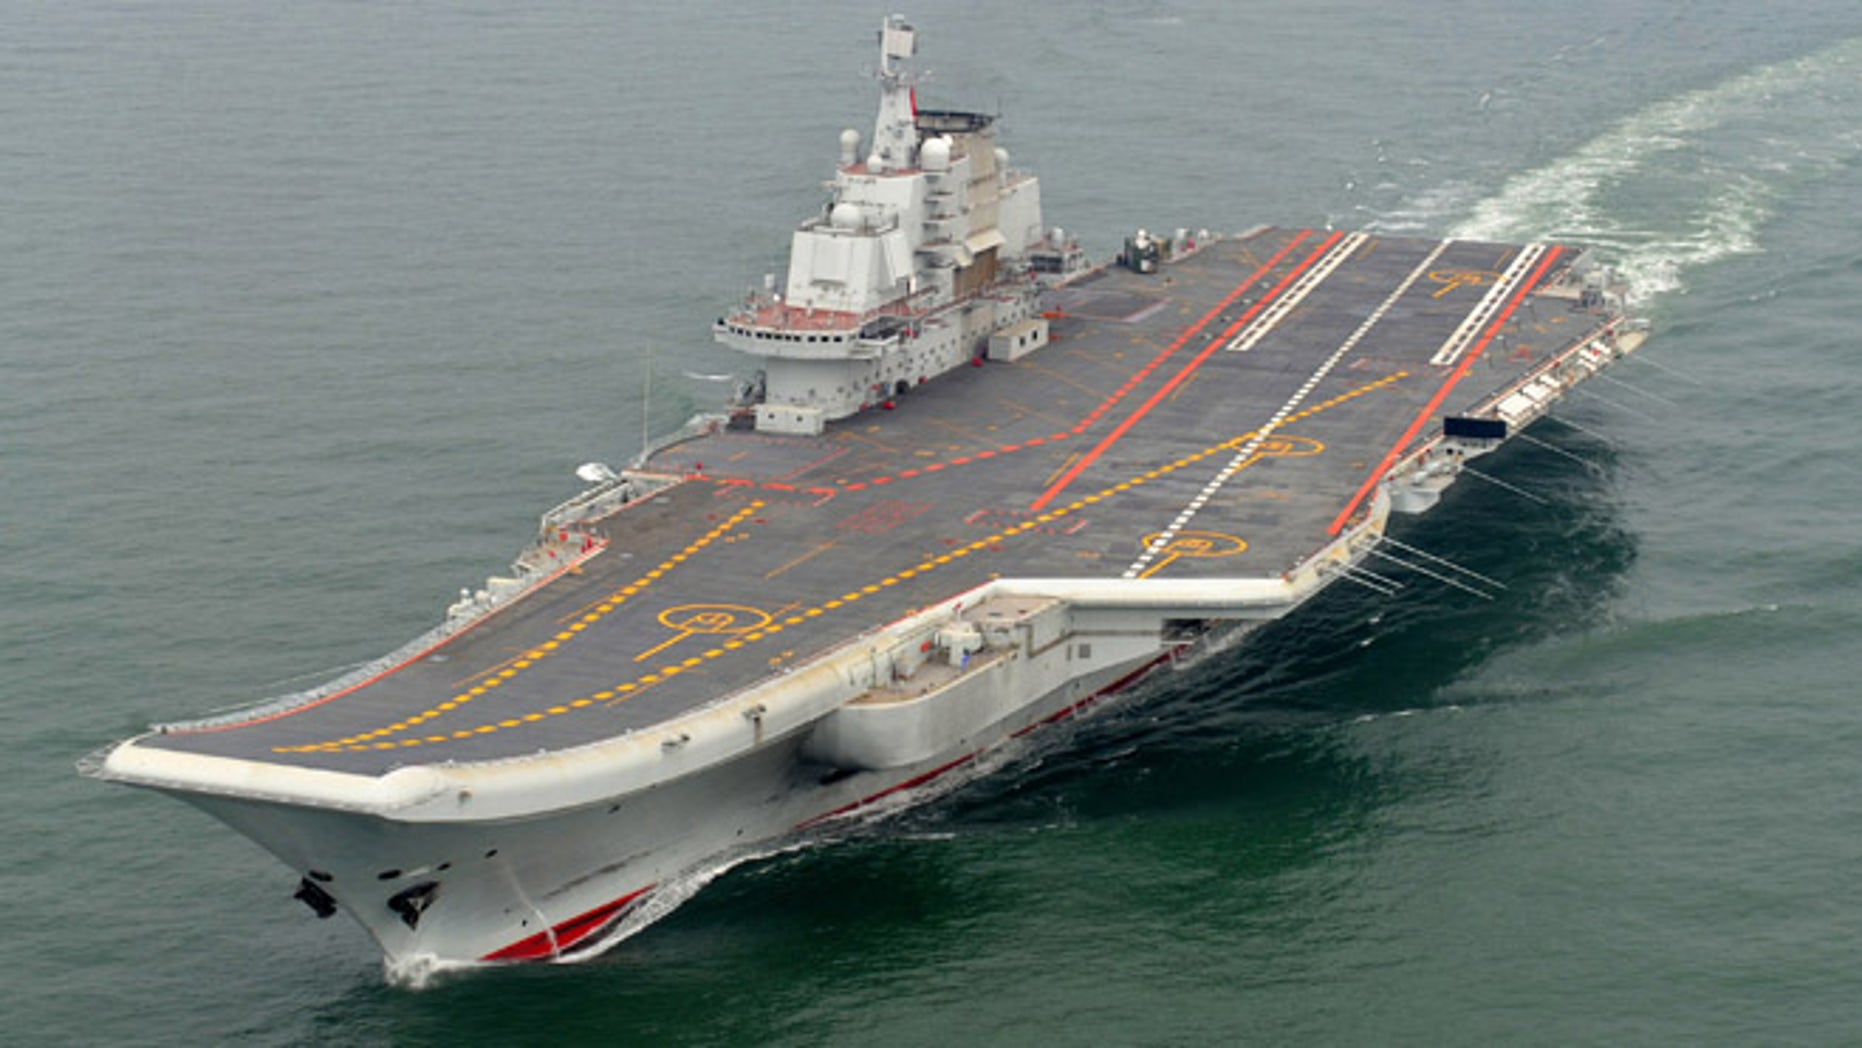 FILE: Chinese aircraft carrier Liaoning cruises for a test on the sea.